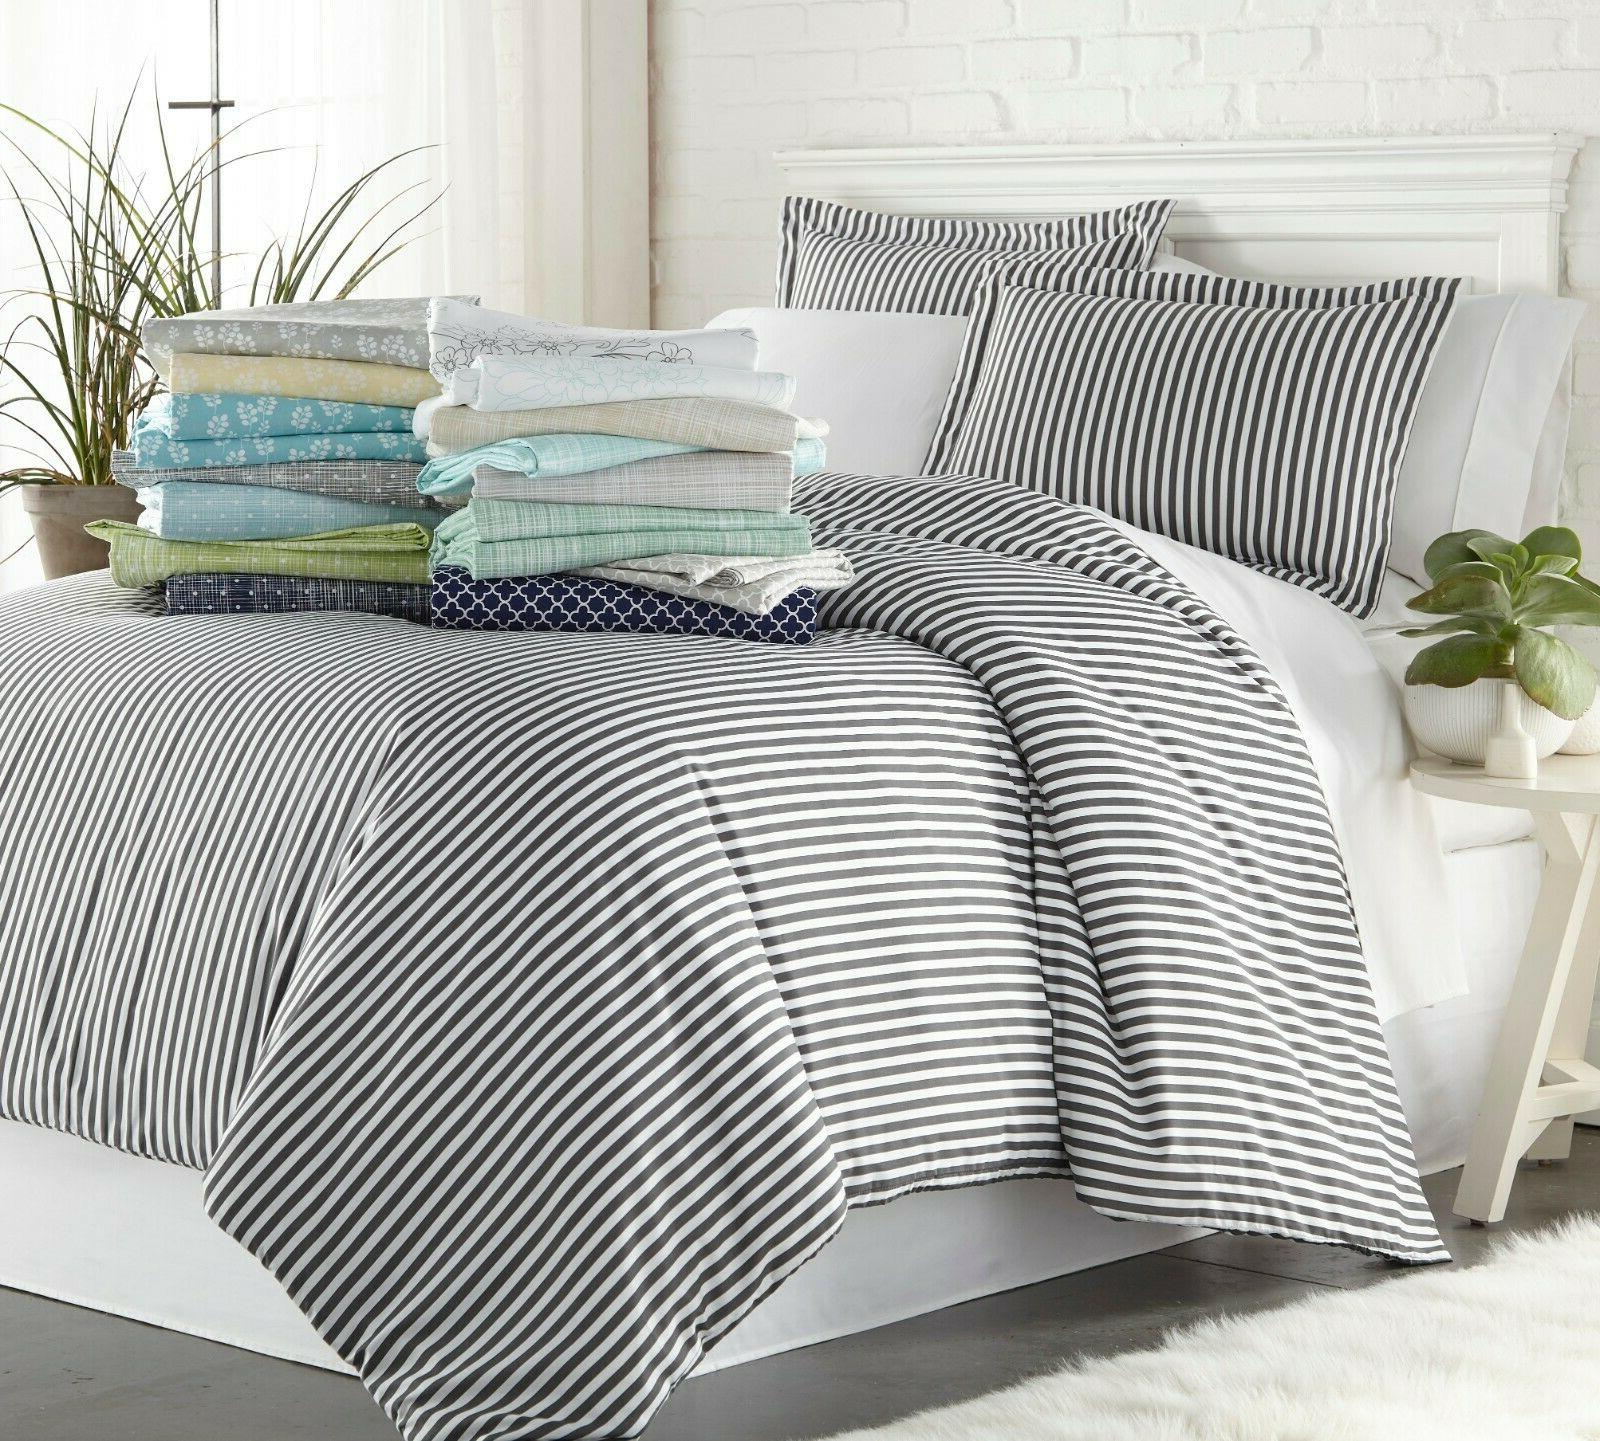 Hotel Luxury Soft 3 Pattern Cover Set Home